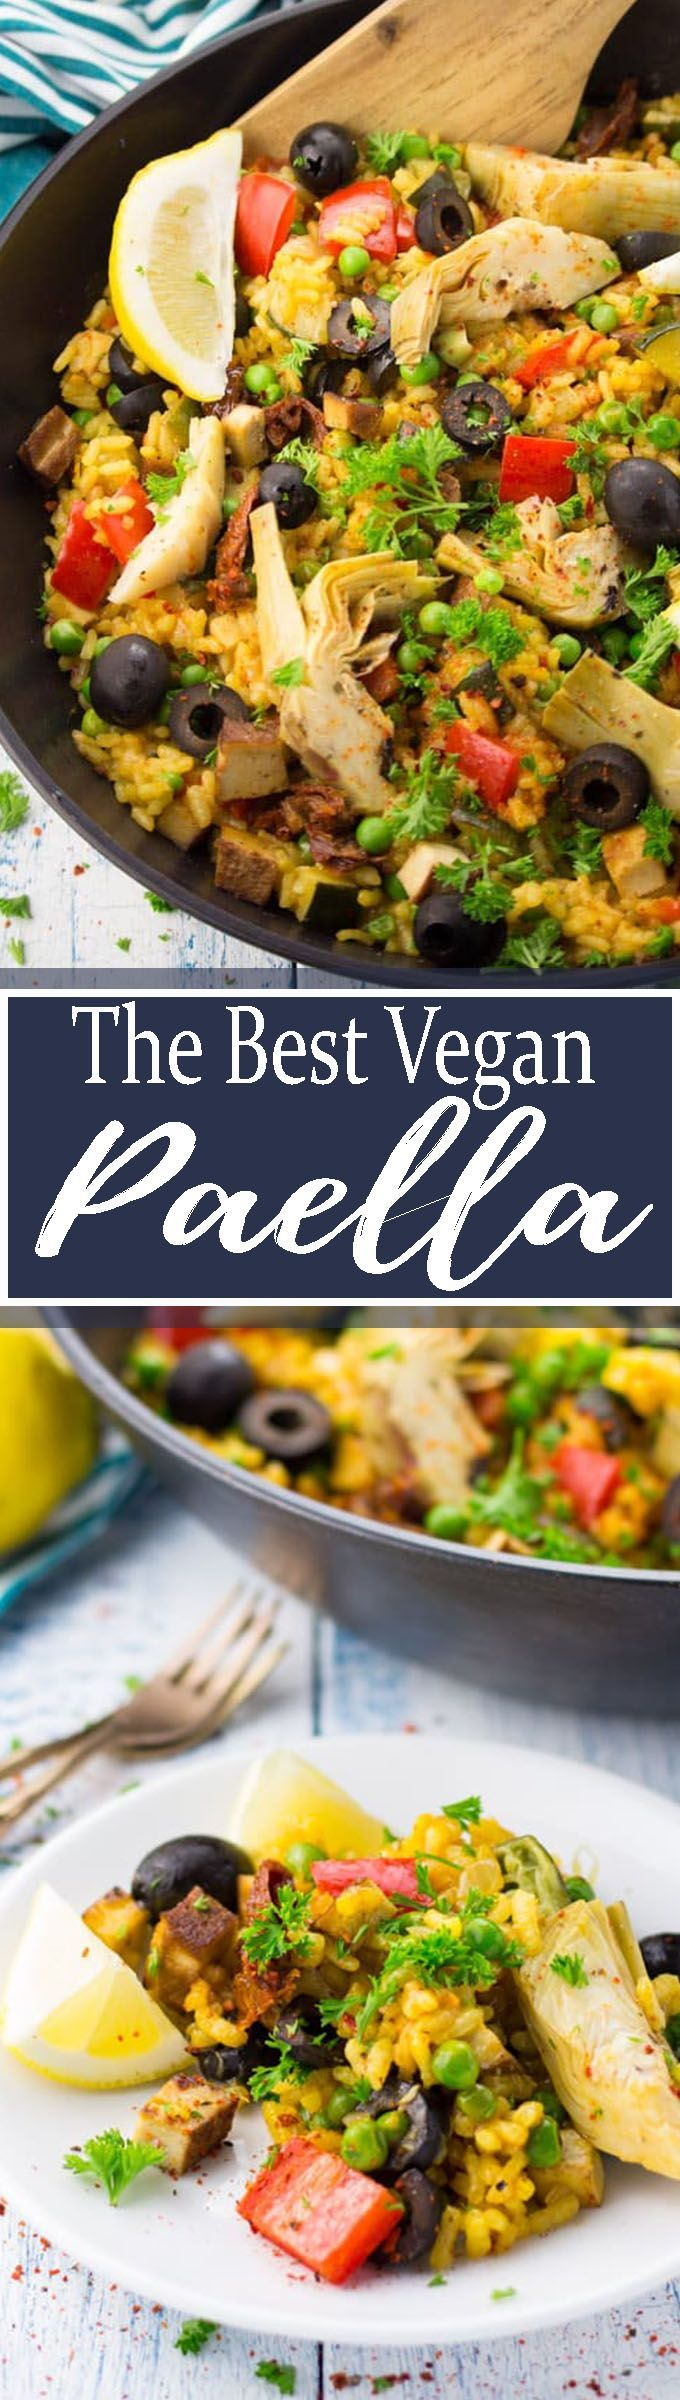 This vegan paella with artichokes and smoked tofu tastes like a trip to Spain! It makes such a delicious and healthy vegan dinner! SO good!! Find more vegan recipes at veganheaven.org